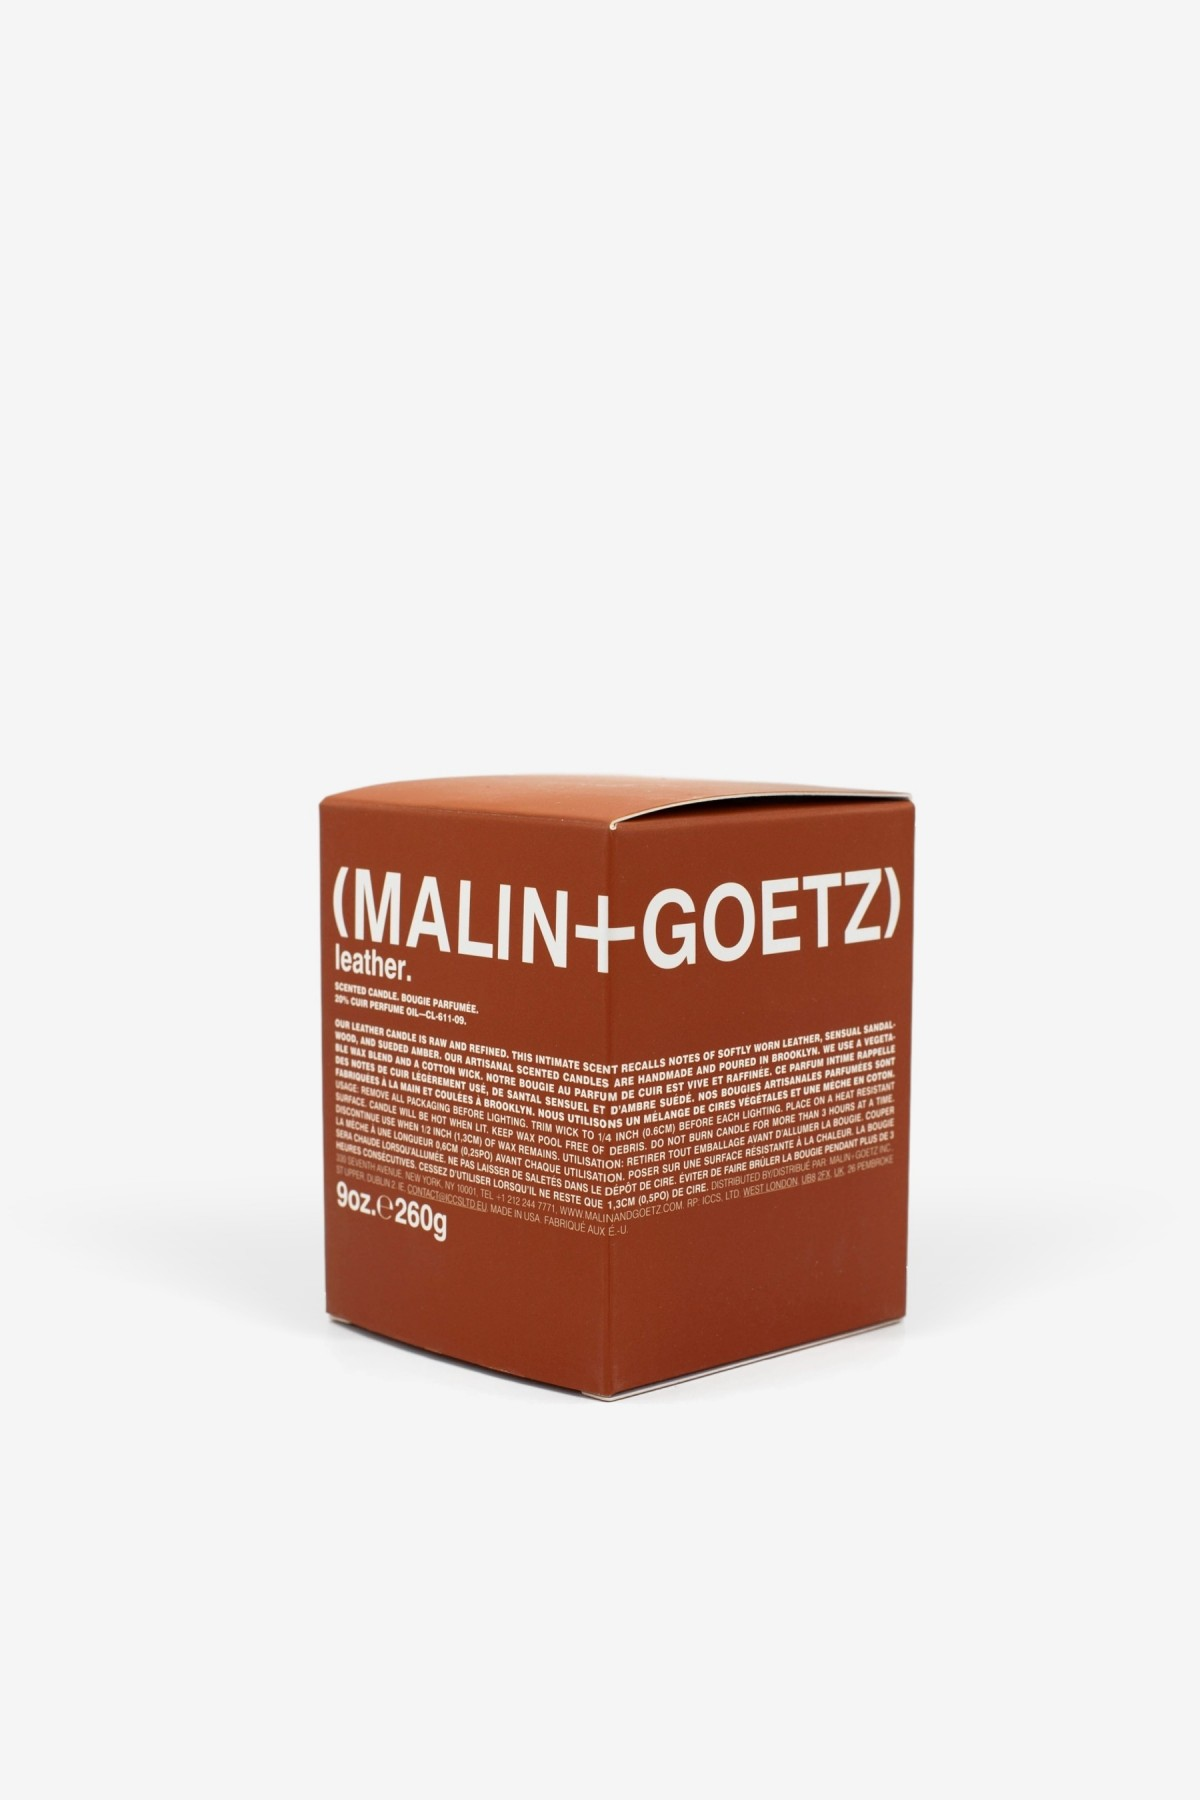 Malin+Goetz Leather Candle 260g in